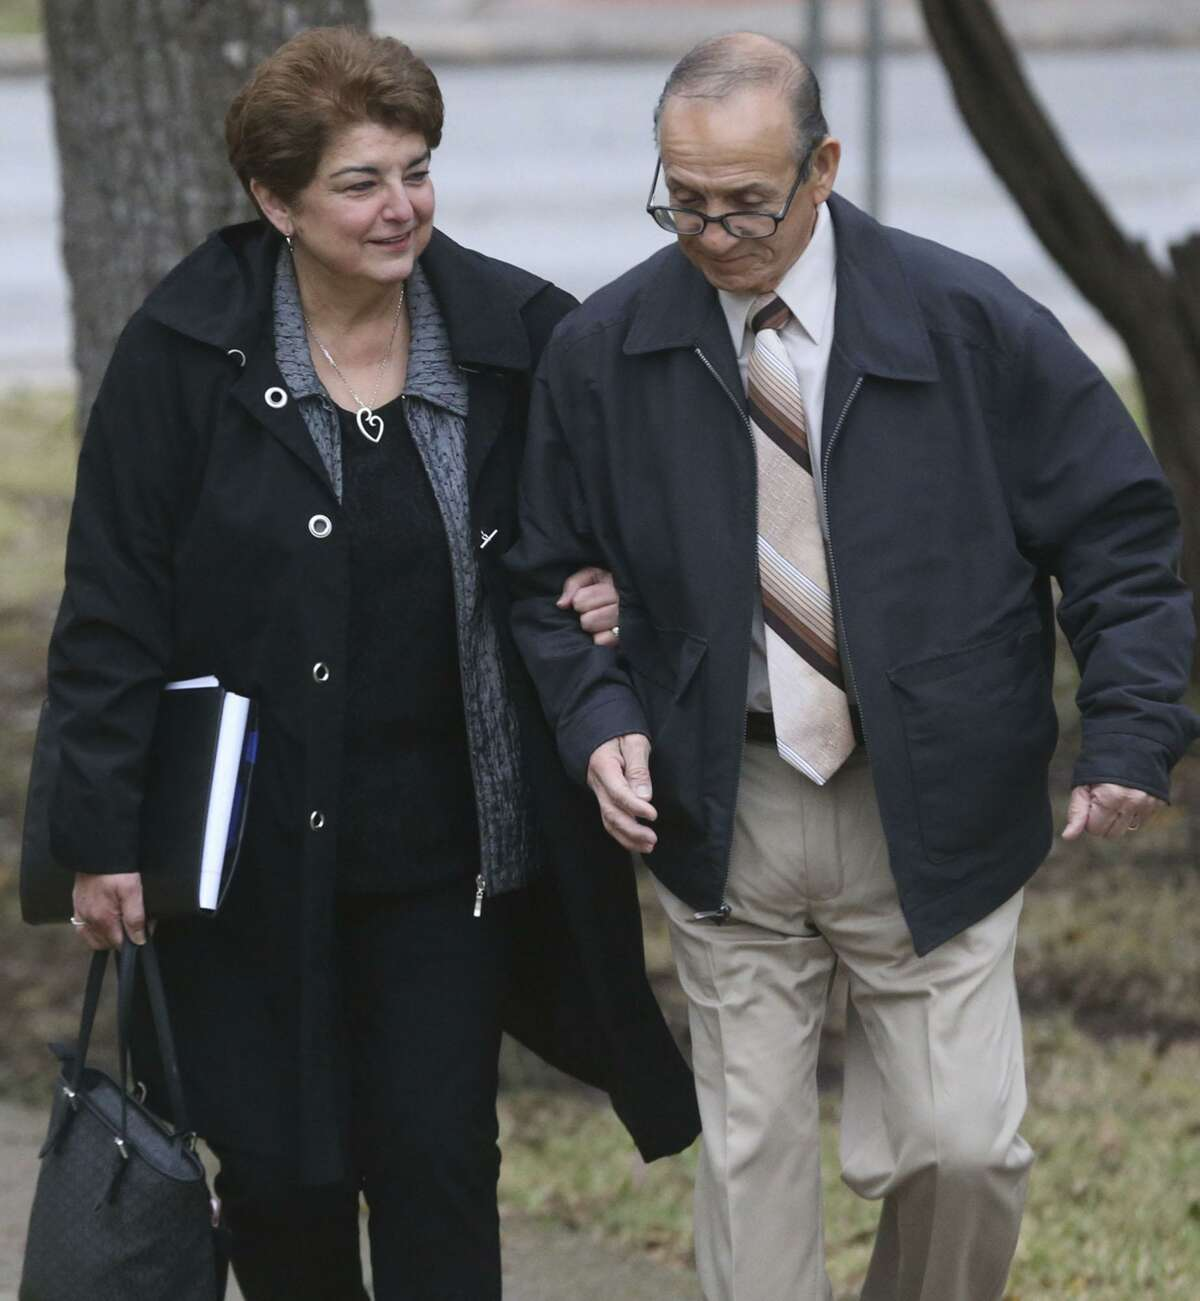 Olga Hernandez (left), a former San Antonio Independent School District trustee, was acquitted on public corruption charges. Though she was acquitted, public officials must also be mindful of the appearance of impropriety.